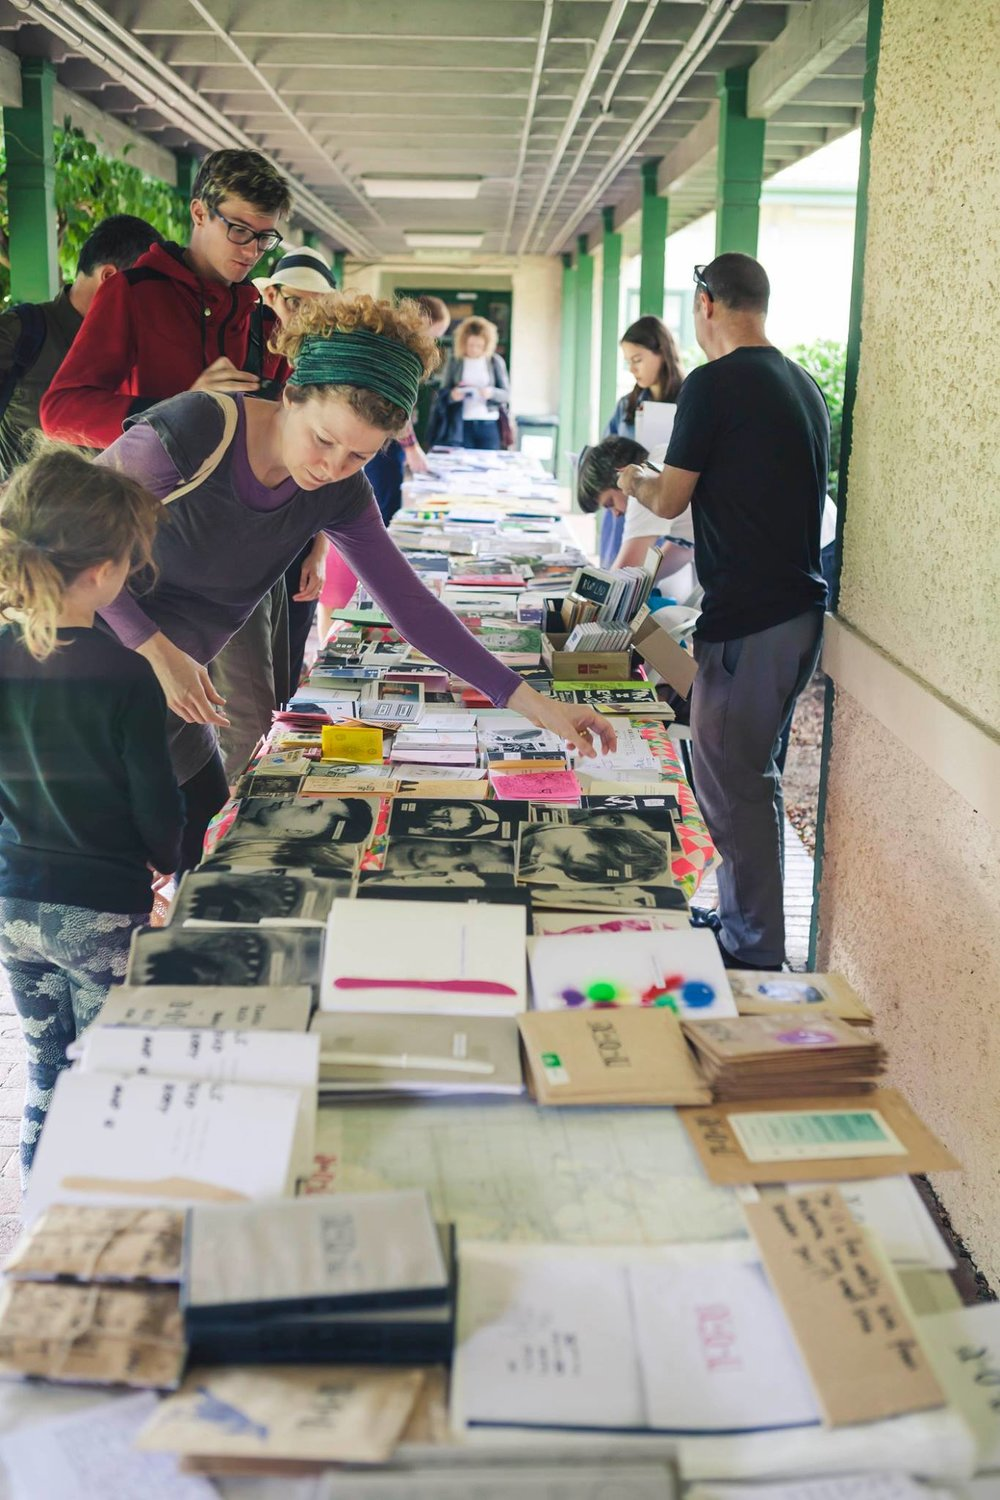 Independent Publishing Fair at Noted Festival 2016. Image by Dream Pieces